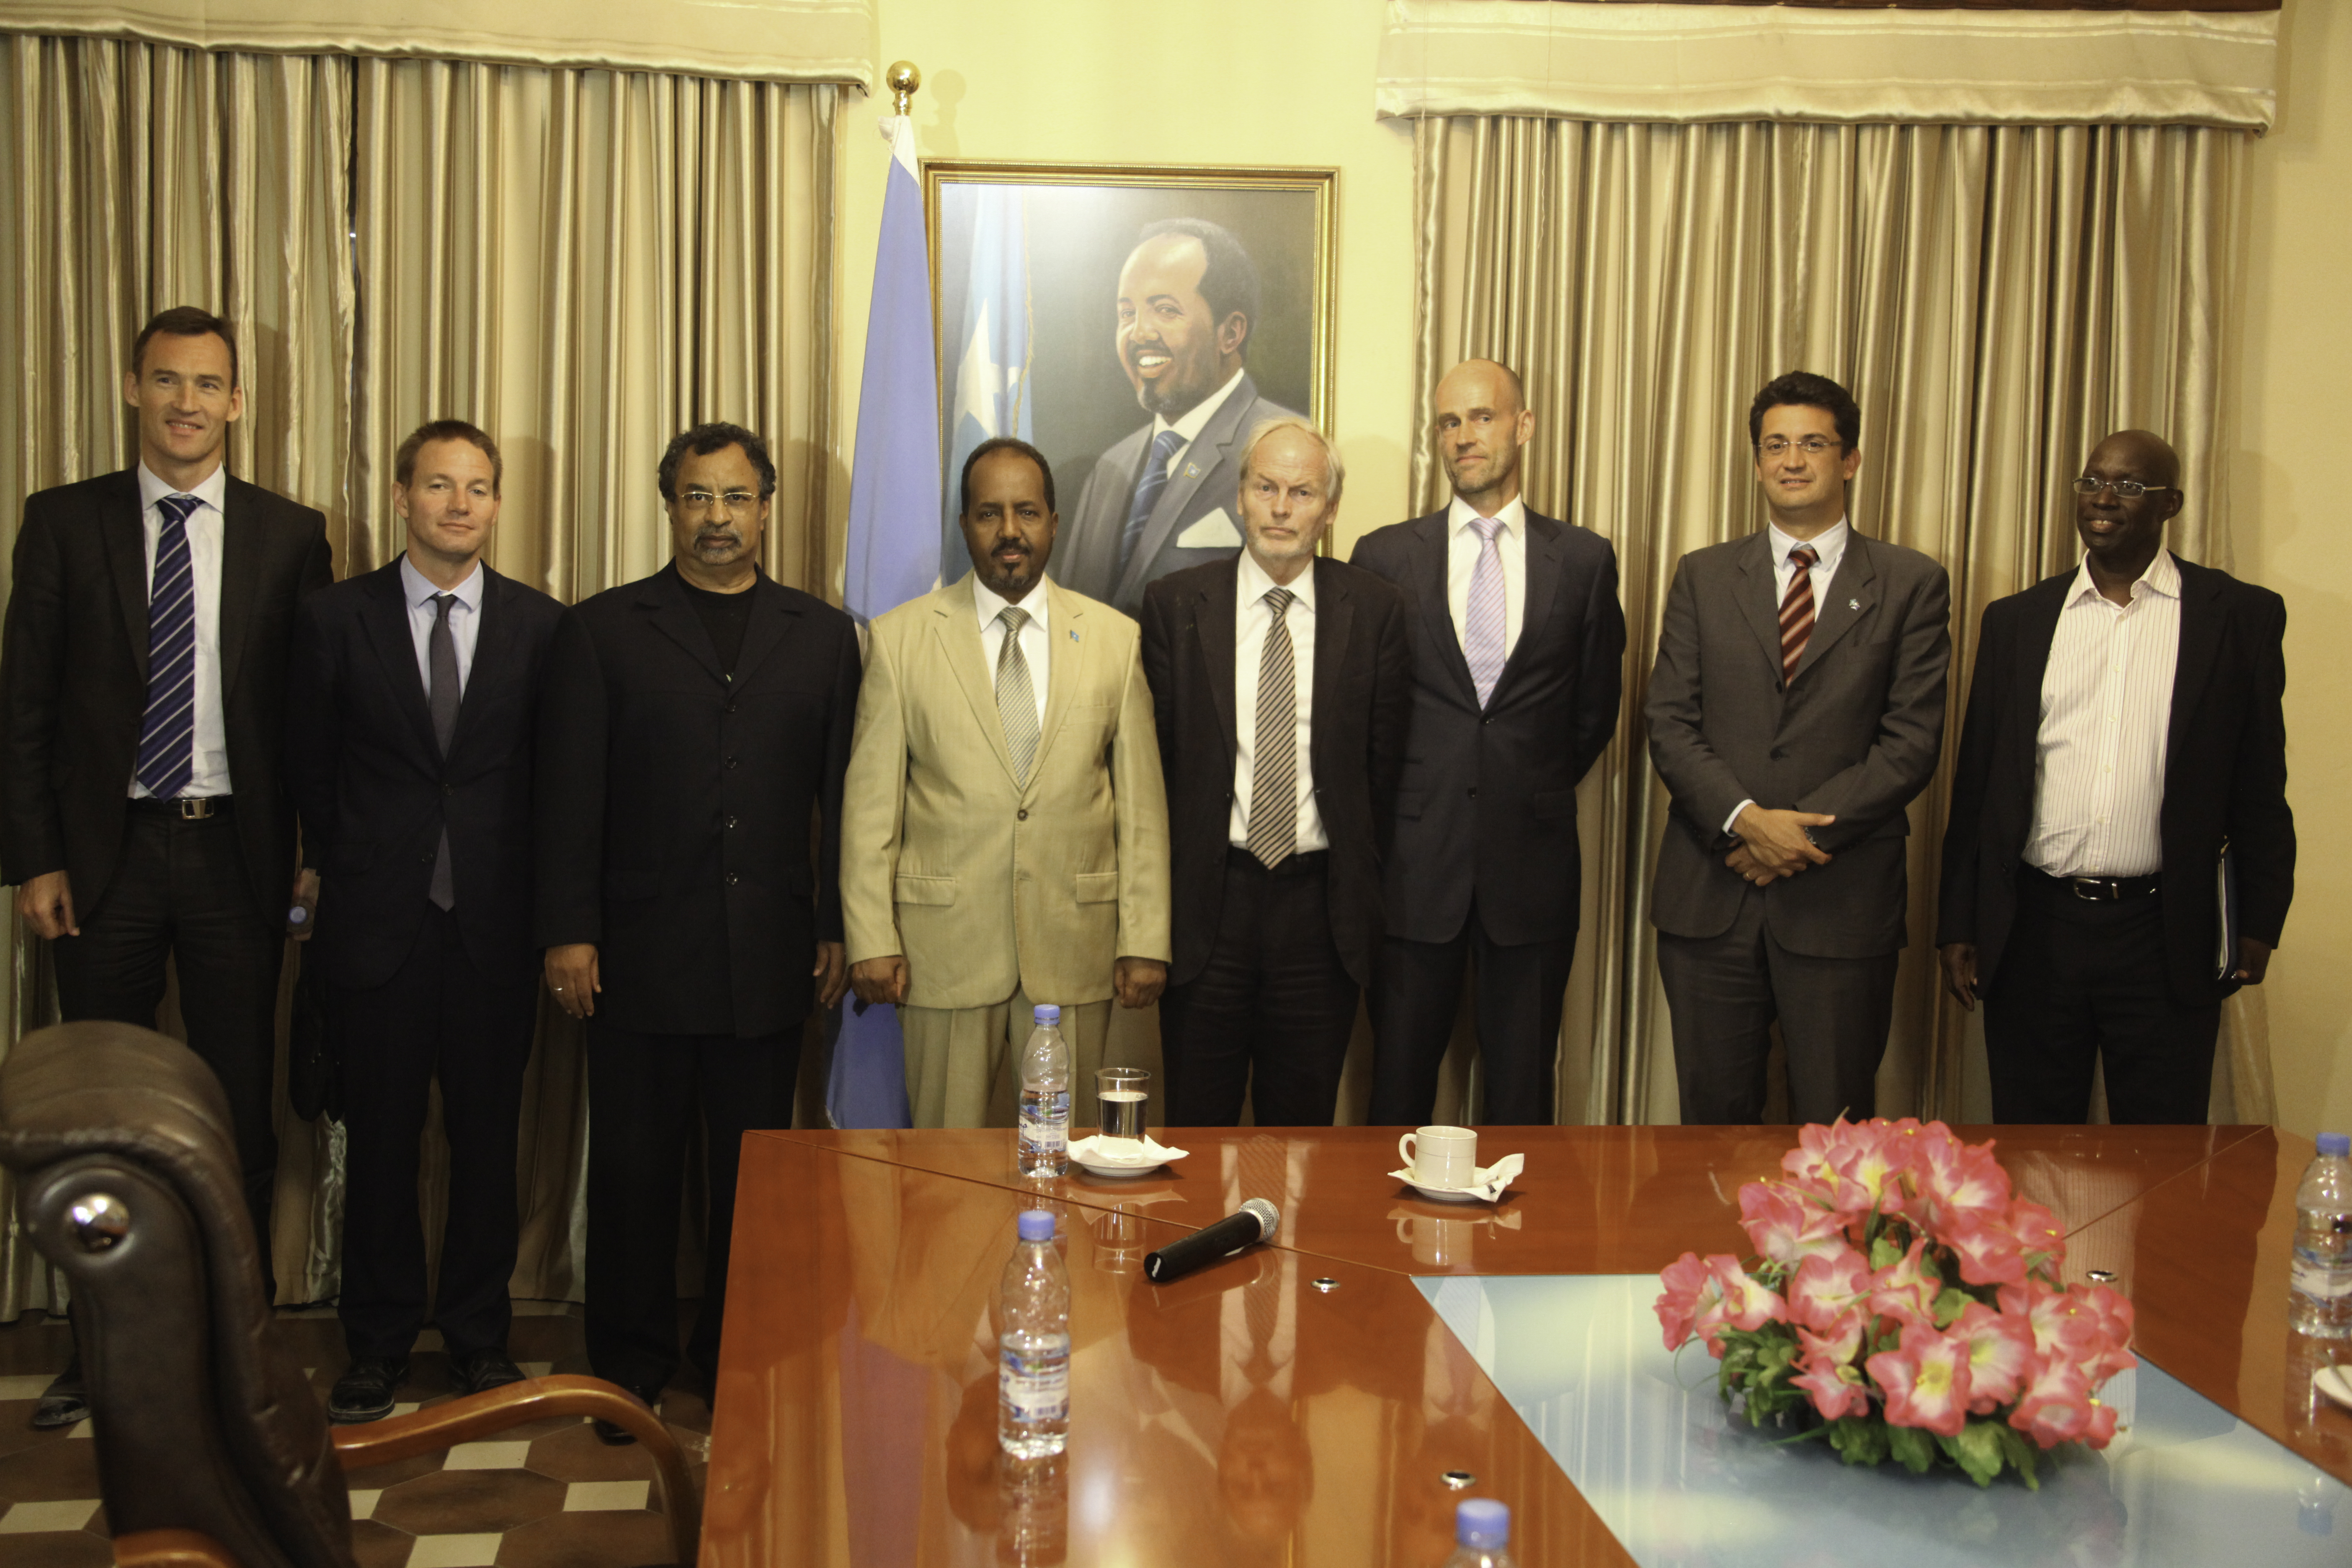 09 The African Union Special Representative for Somalia_, Groupshot, Indoor, People, HQ Photo